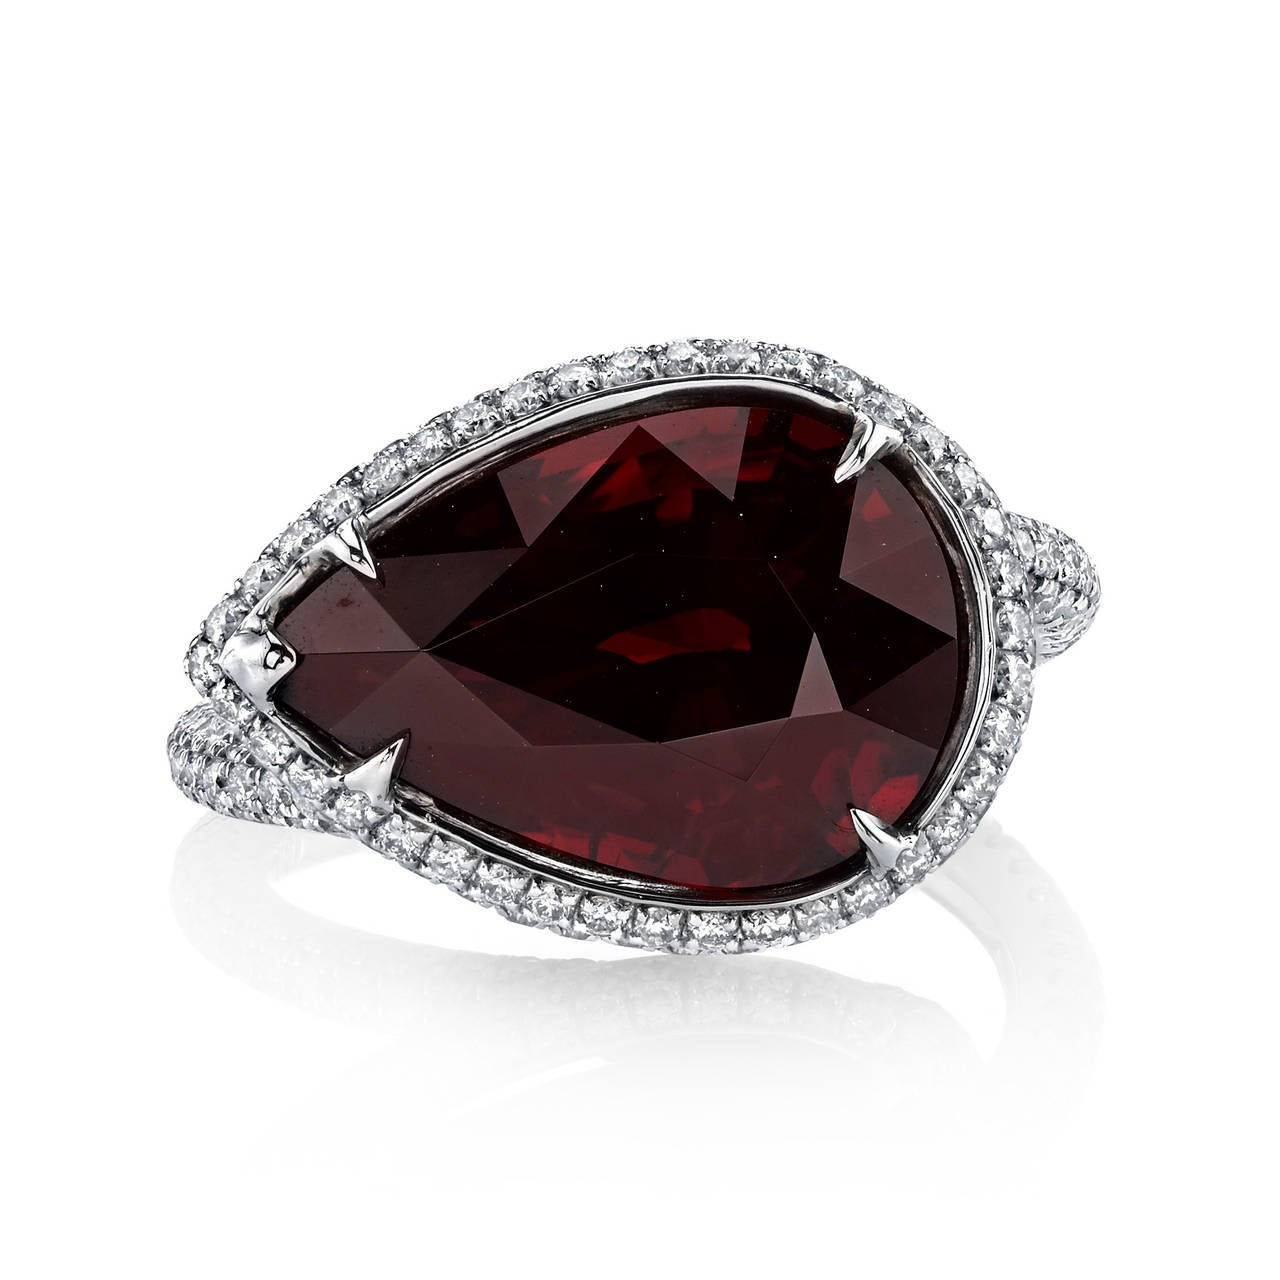 Garnet White Gold Pear Shaped Diamond Ring For Sale at 1stdibs